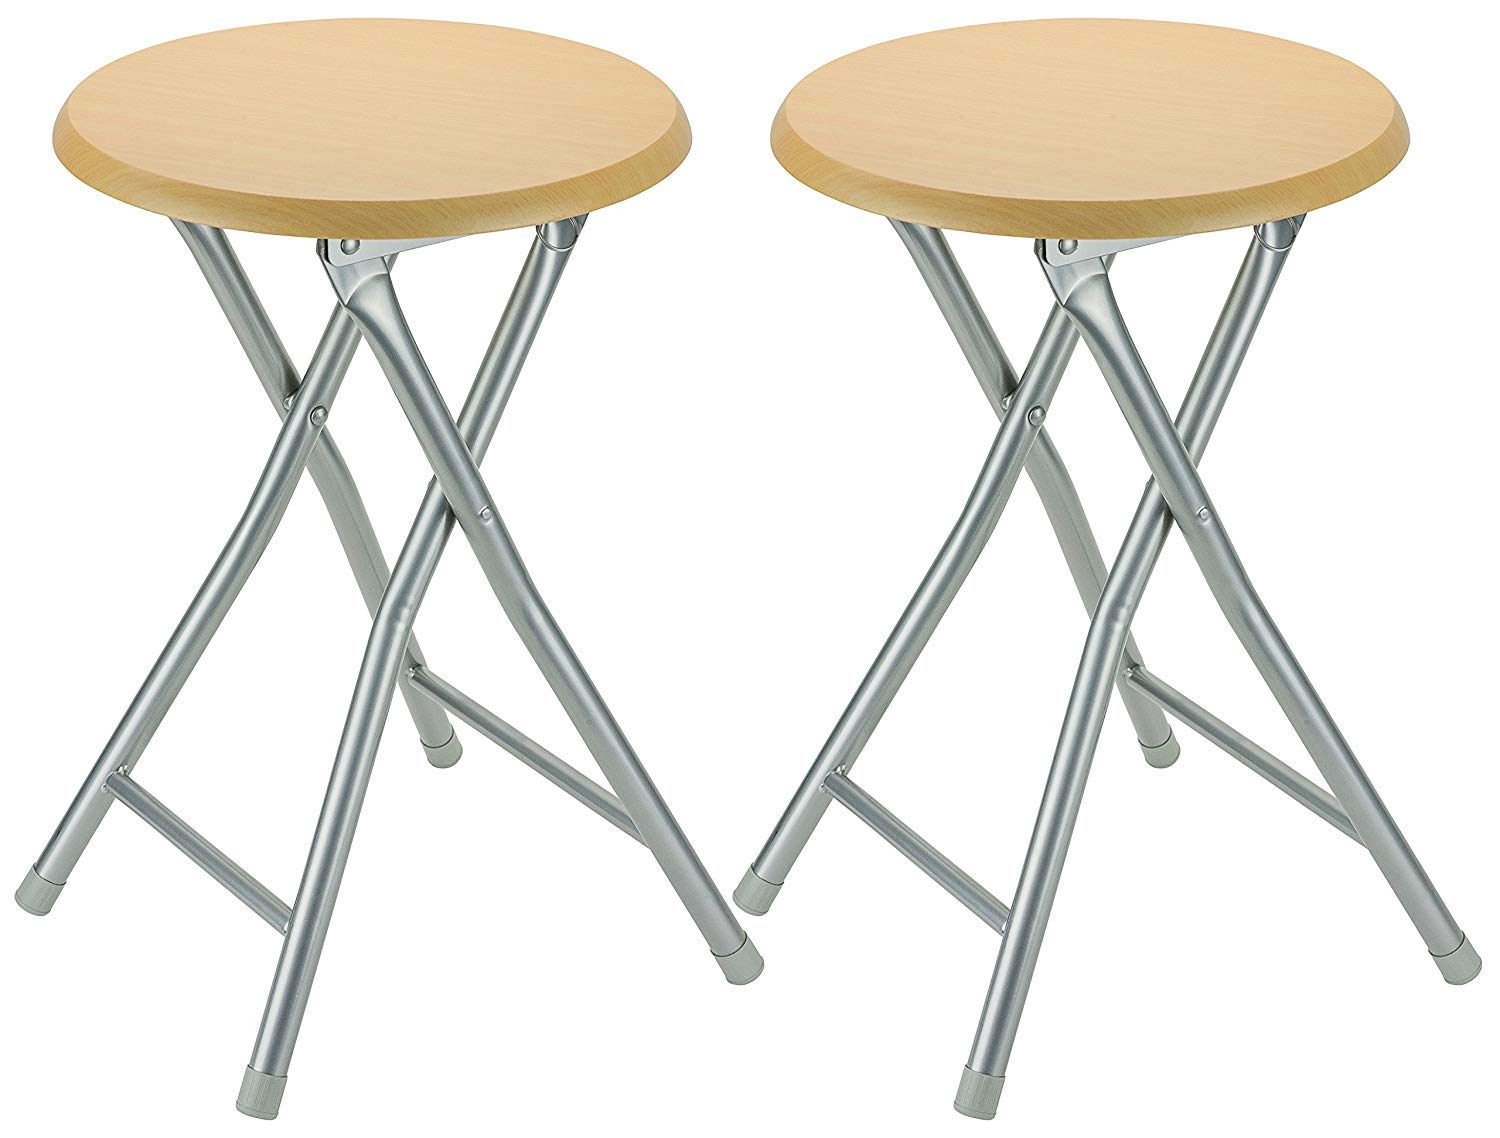 DecorRack Wooden Seat Folding Stool, 18 inch Portable Lightweight Foldable Chair, Collapsible Sitting Stool with Wooden Seating Top, Beige Oak Design (2 Pack) by DecorRack